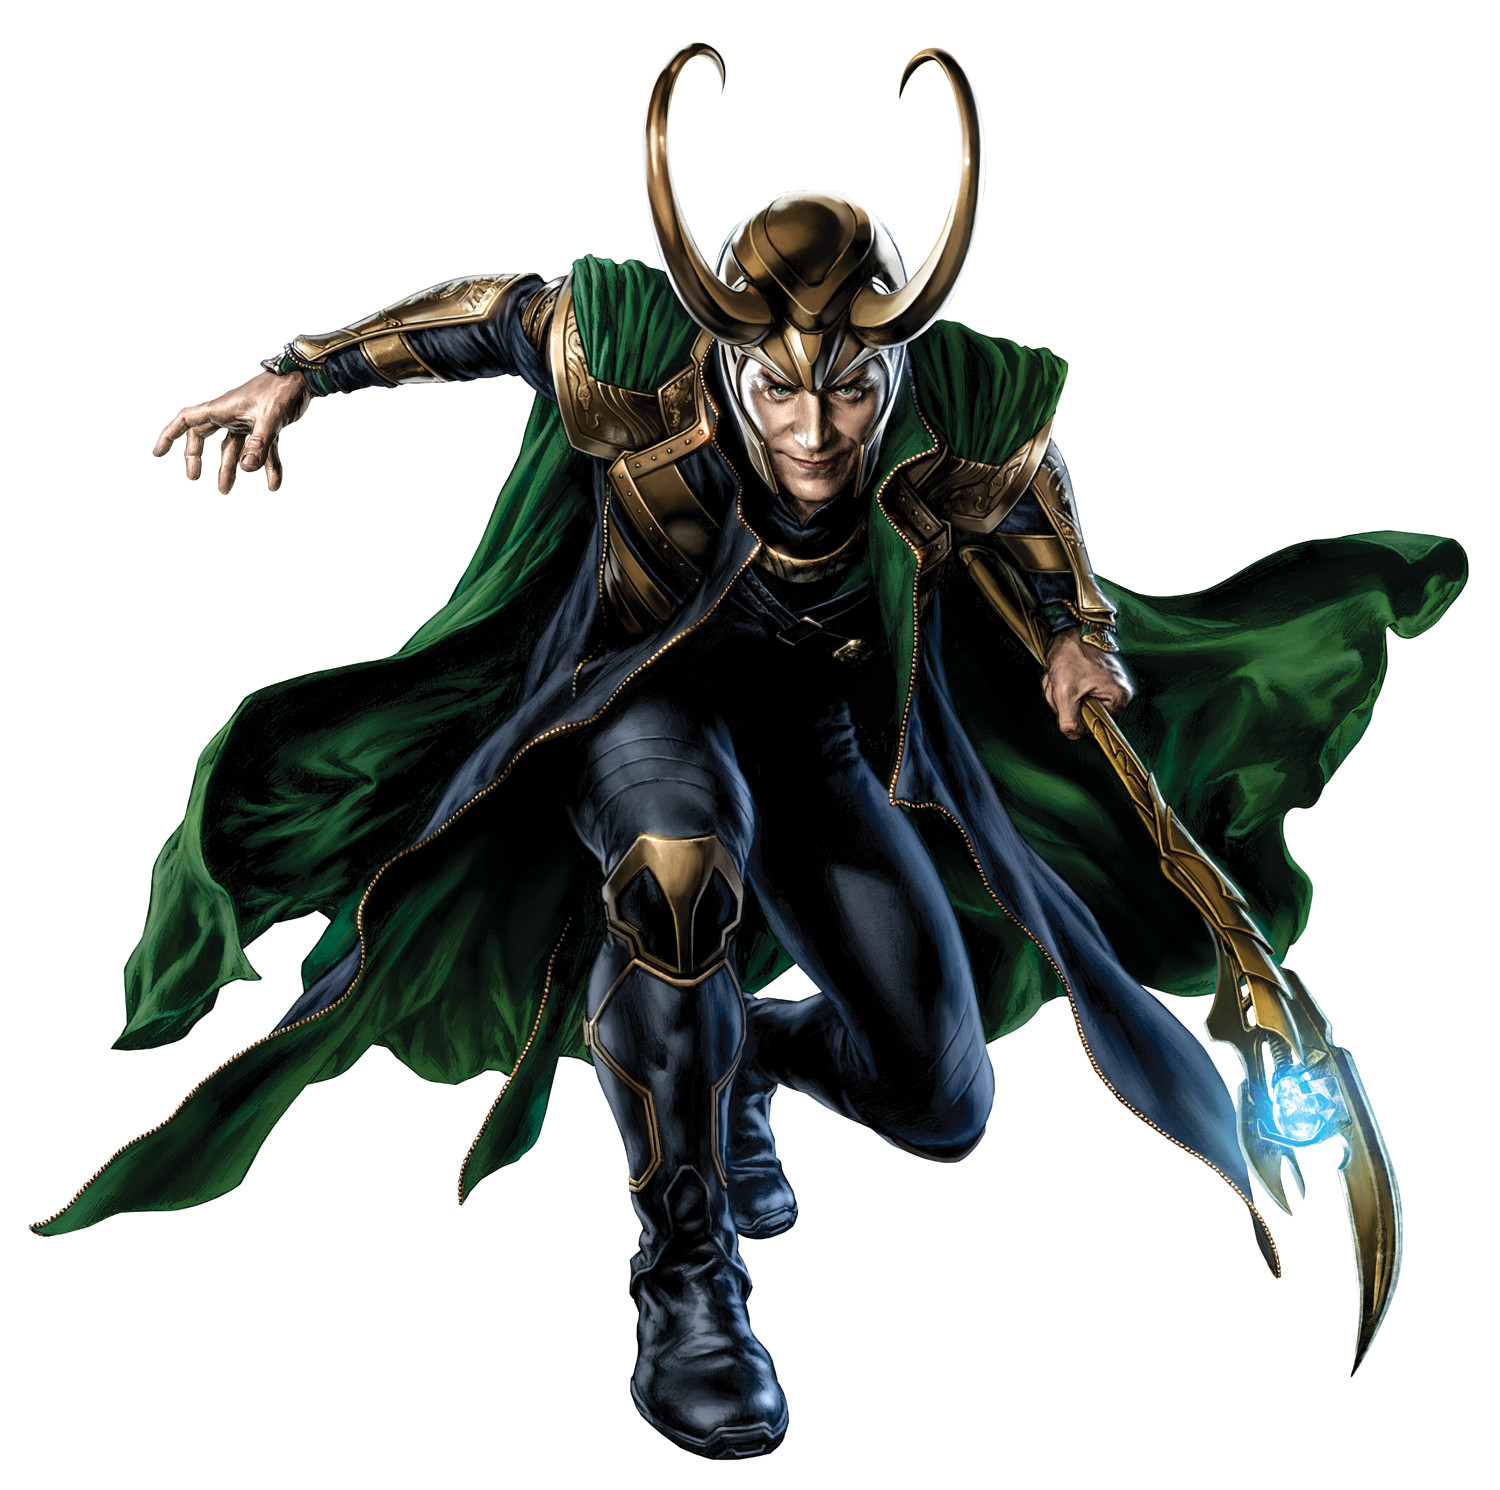 Jedi Mouseketeer: New Look for the Avengers and Loki ...